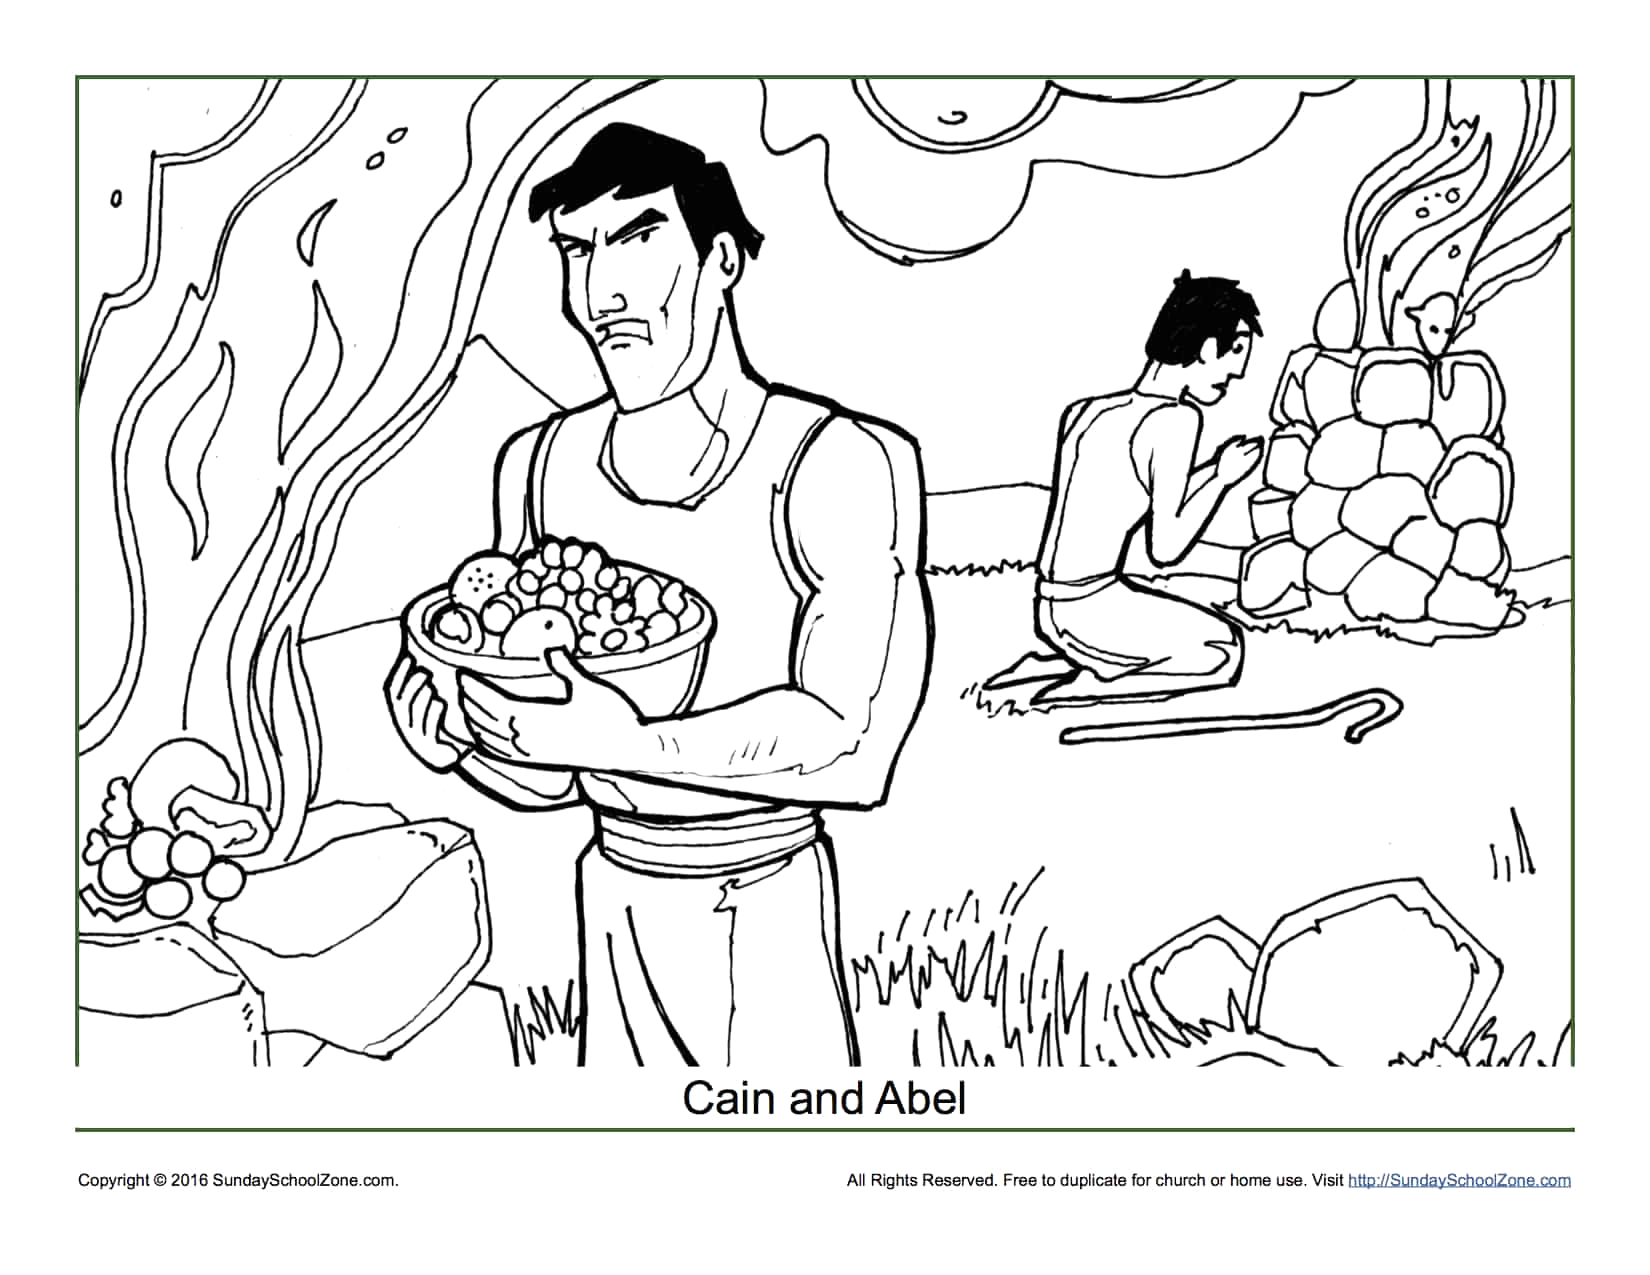 Free Printable Cain and Abel Coloring Pages Cain and Abel Coloring Page Children S Bible Activities